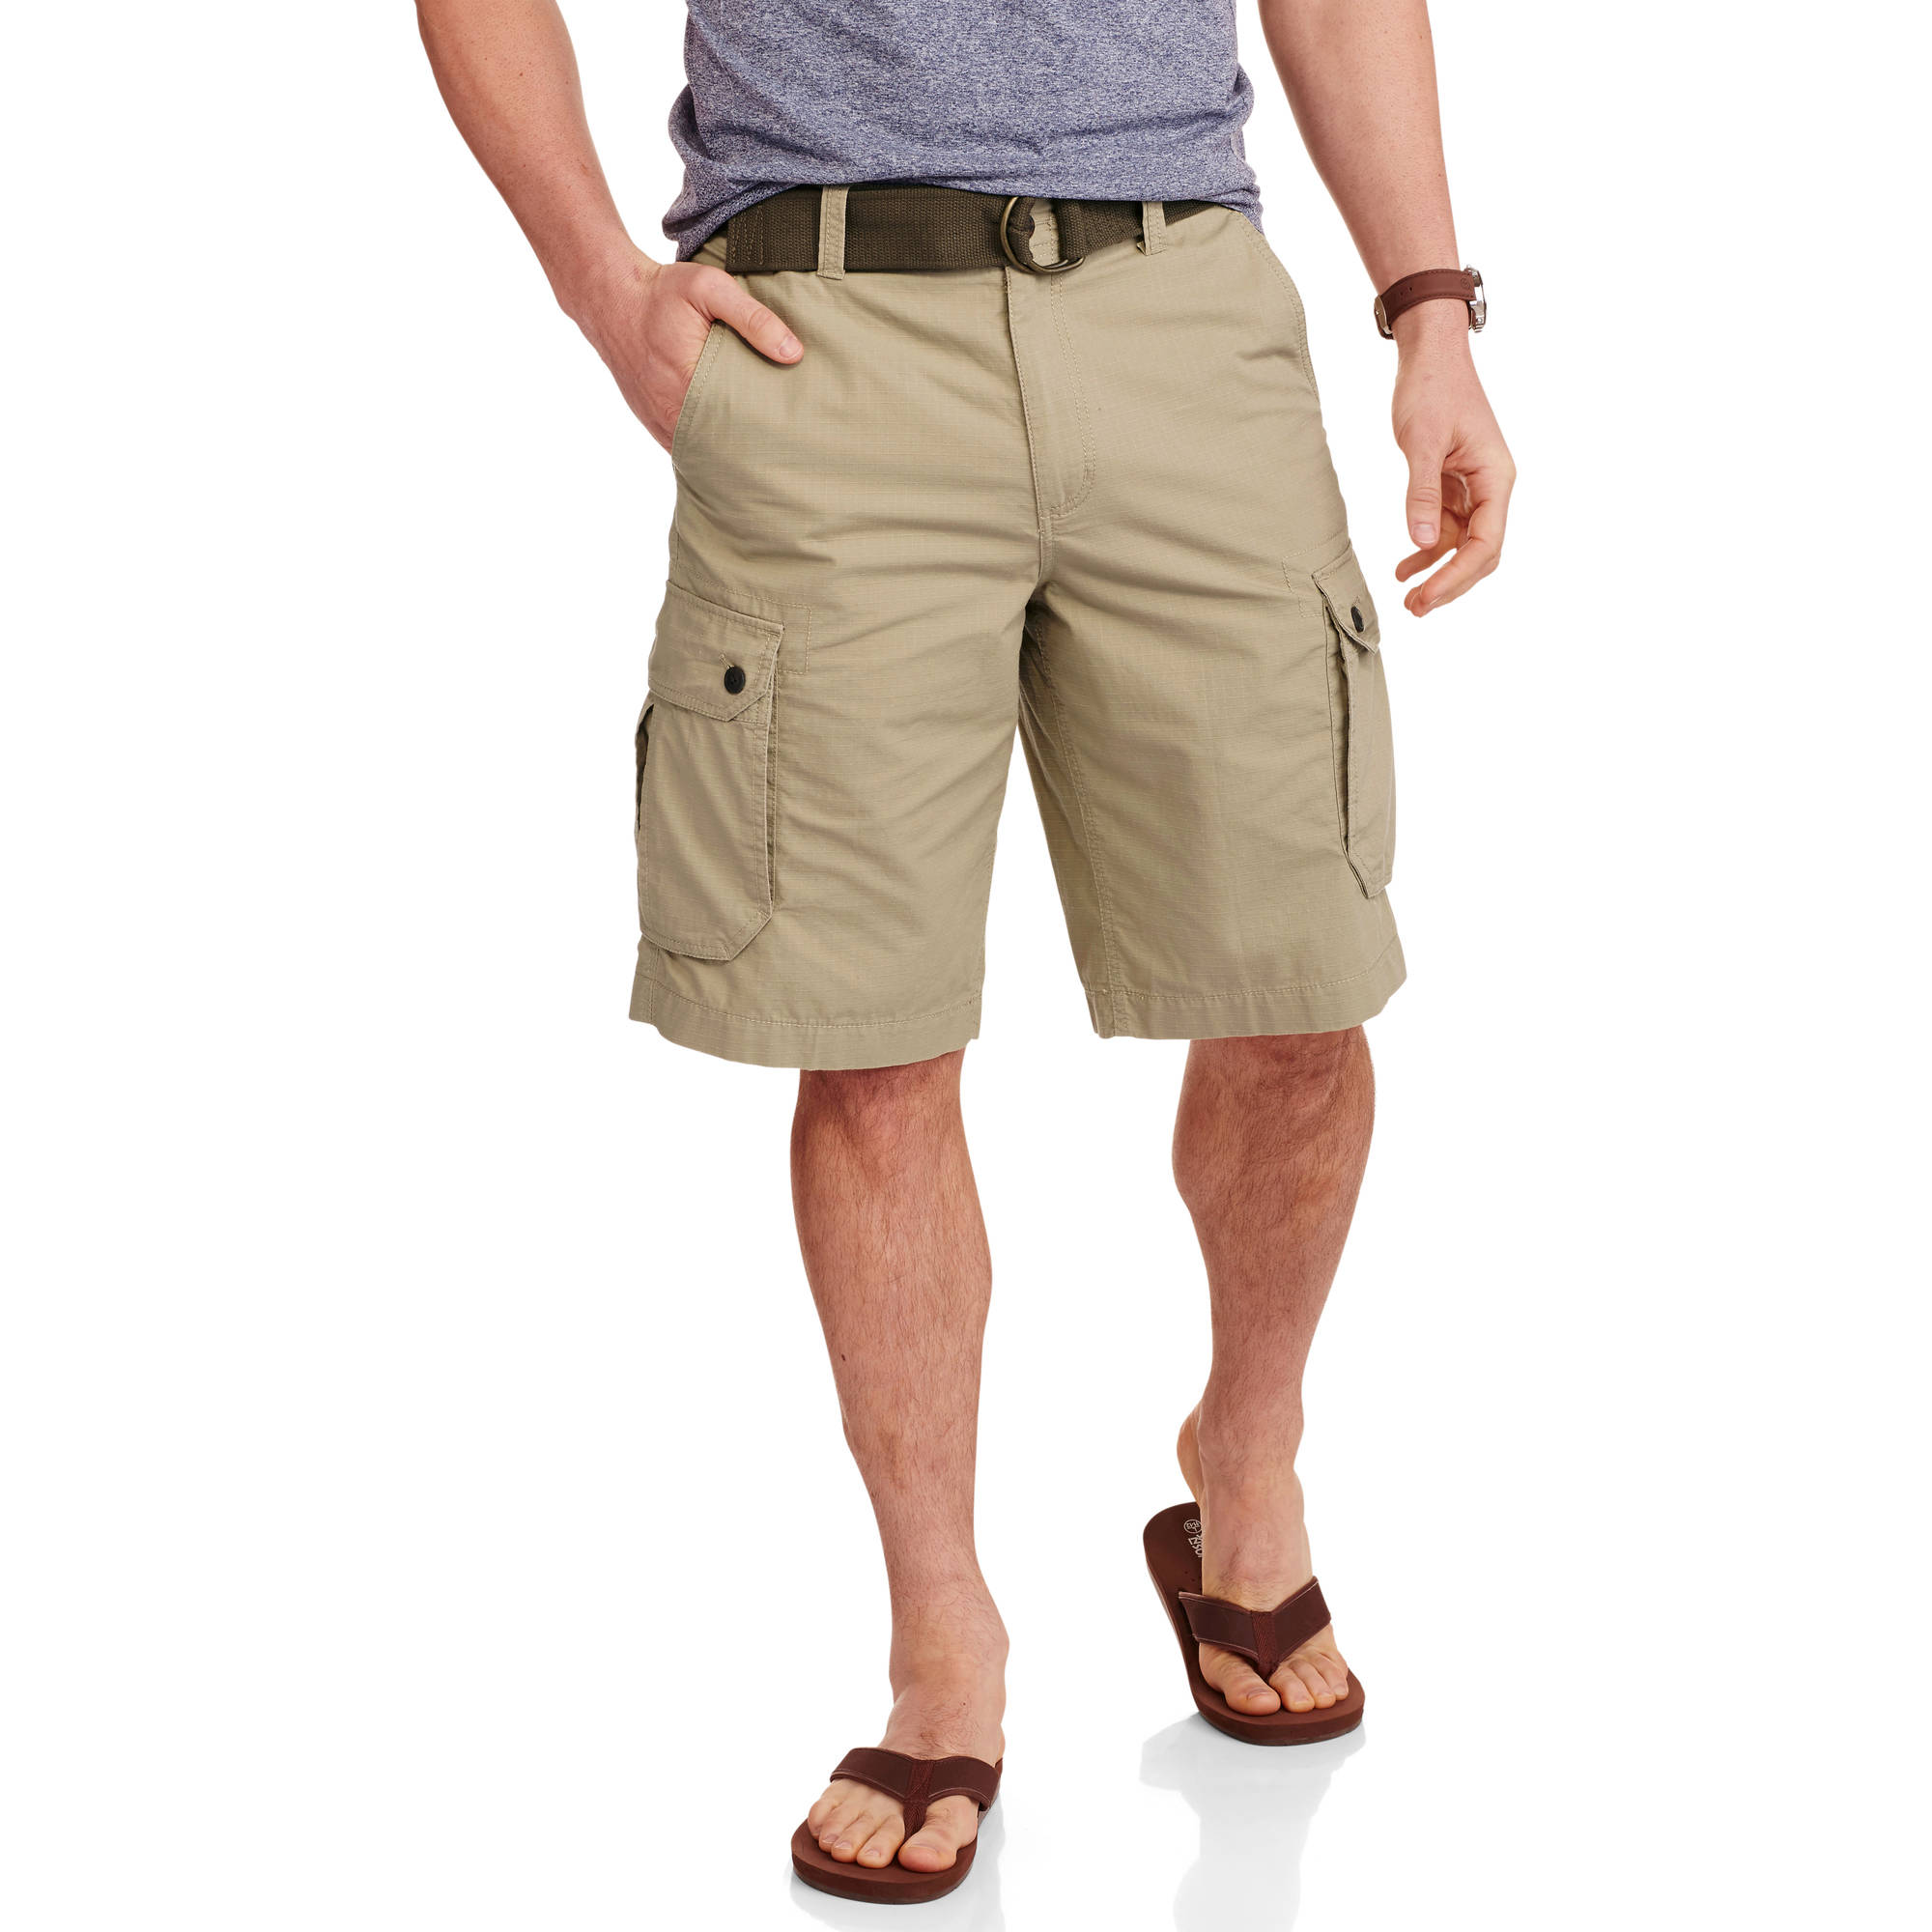 Men's Shorts from softhome24.ml softhome24.ml offers a wide, easily searchable selection of men's shorts, so now it's quick and easy to shop for the shorts you want.